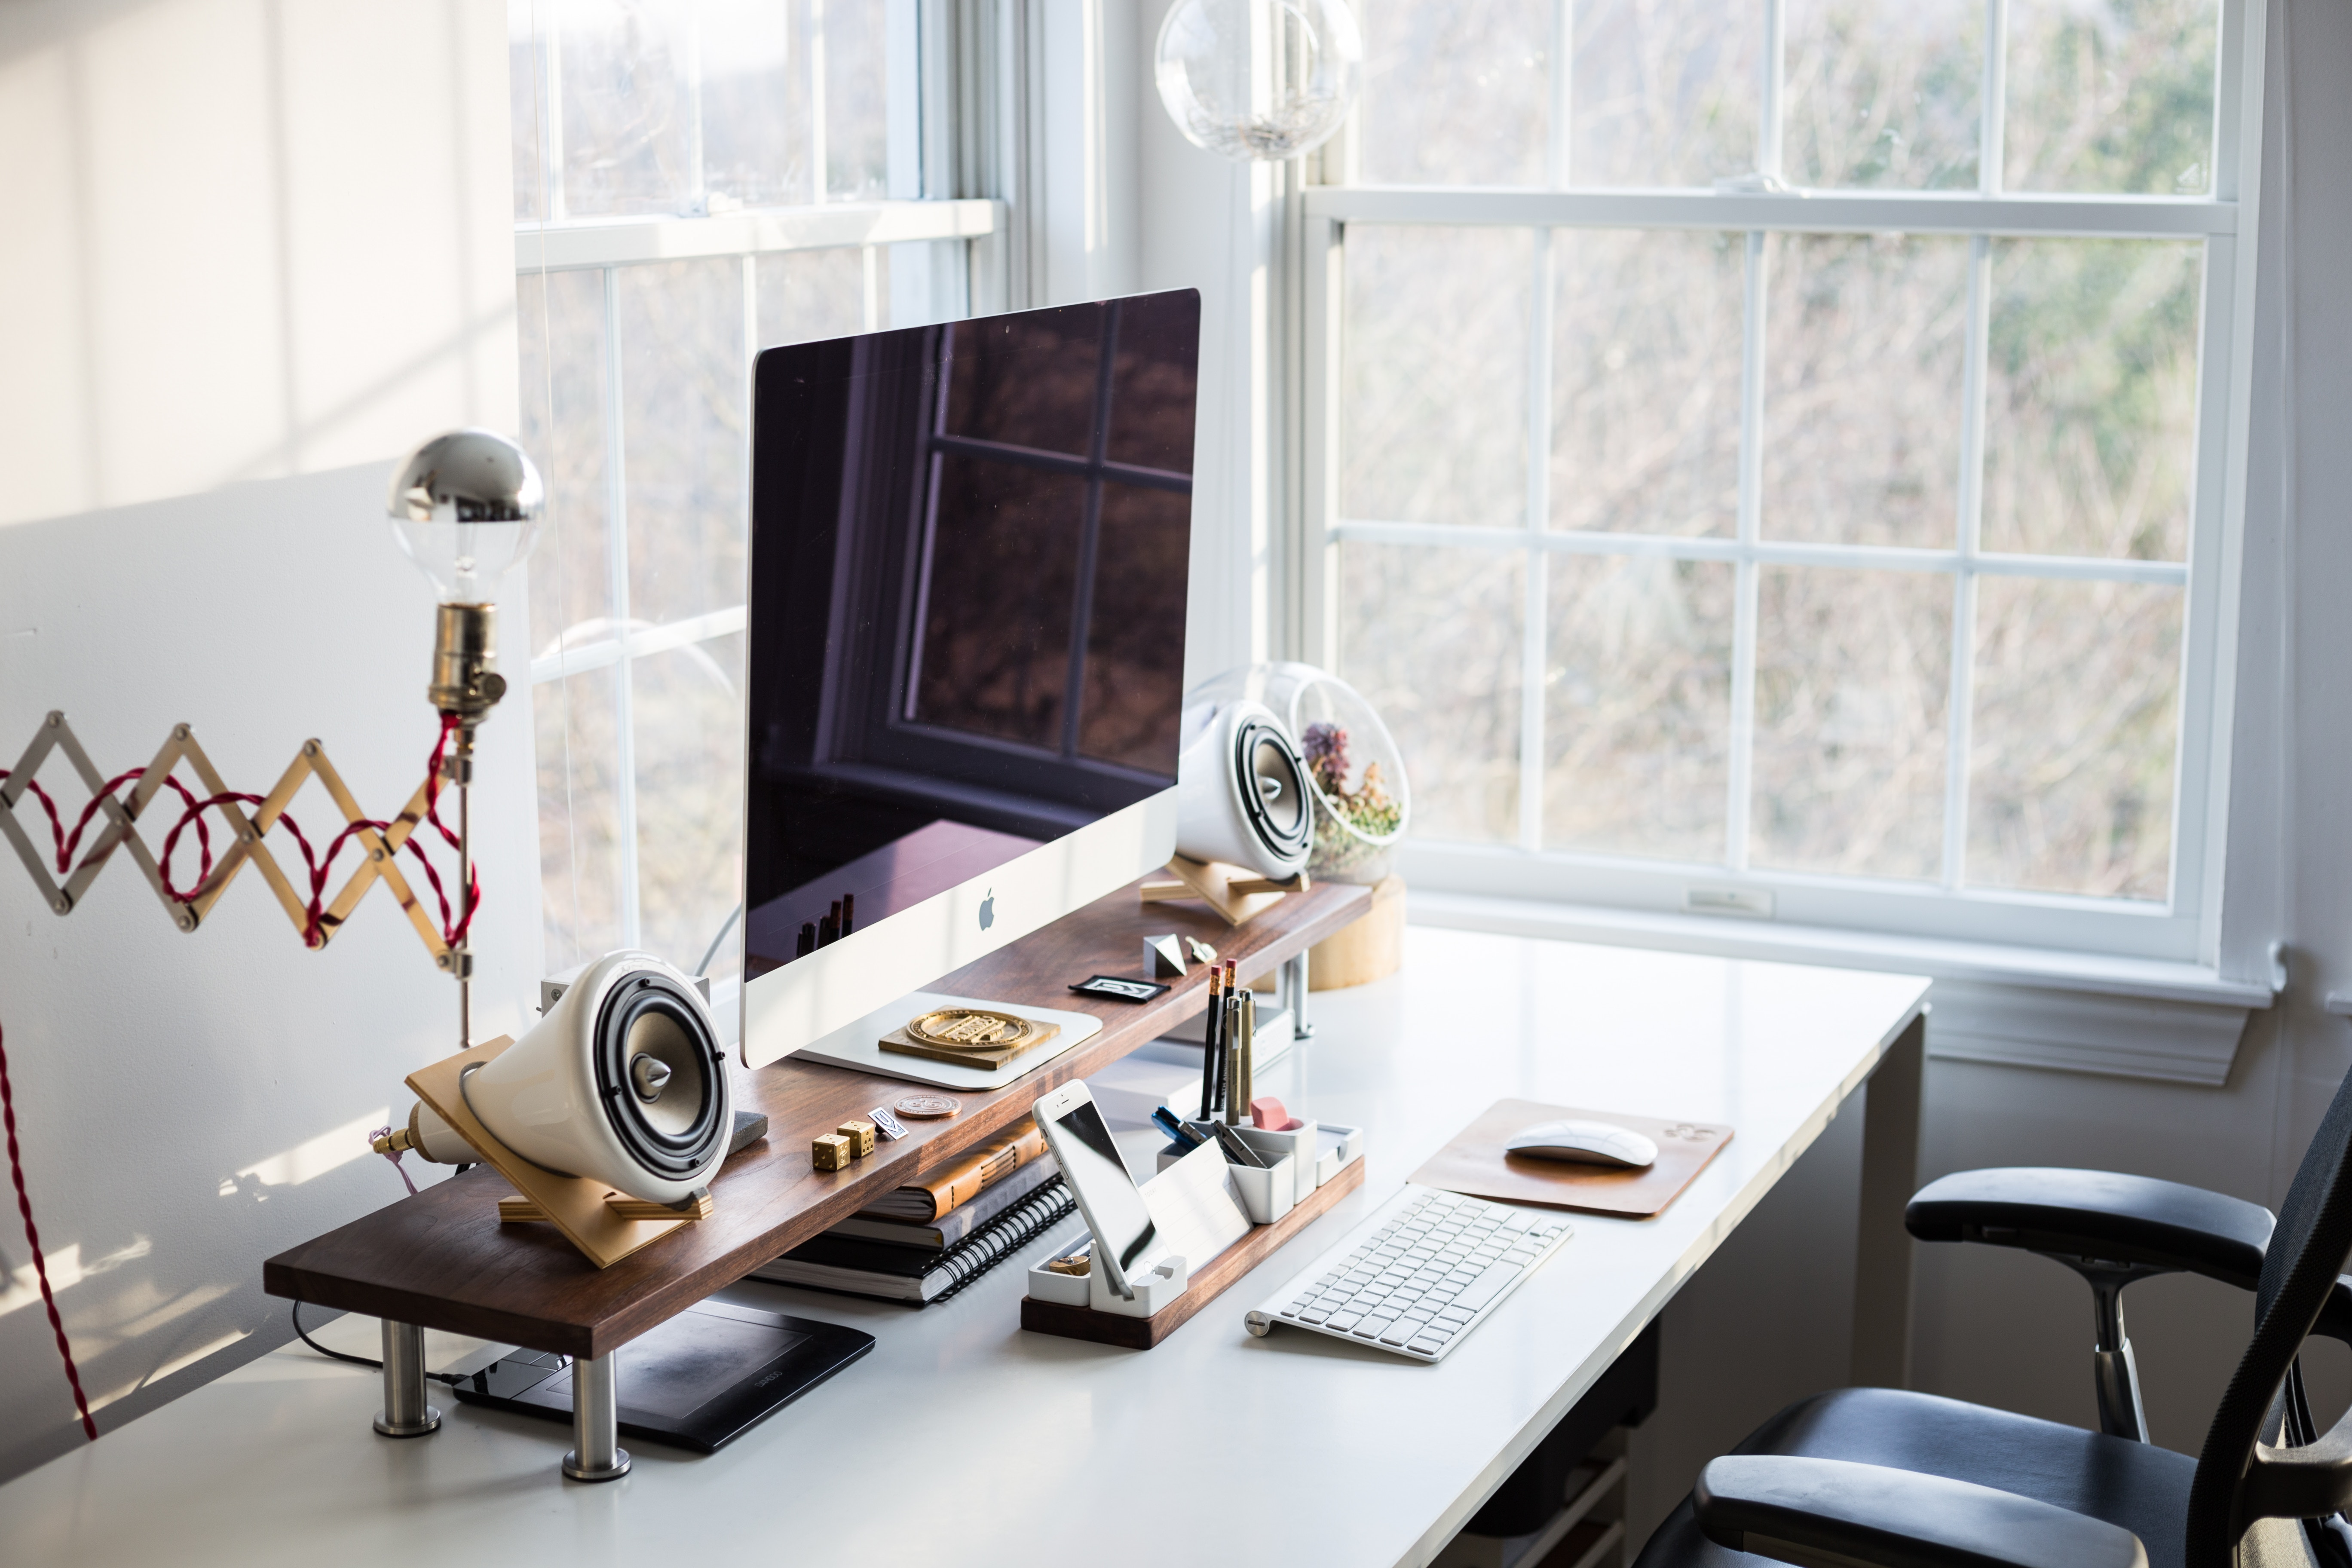 8 cool interior design ideas to up your productivity